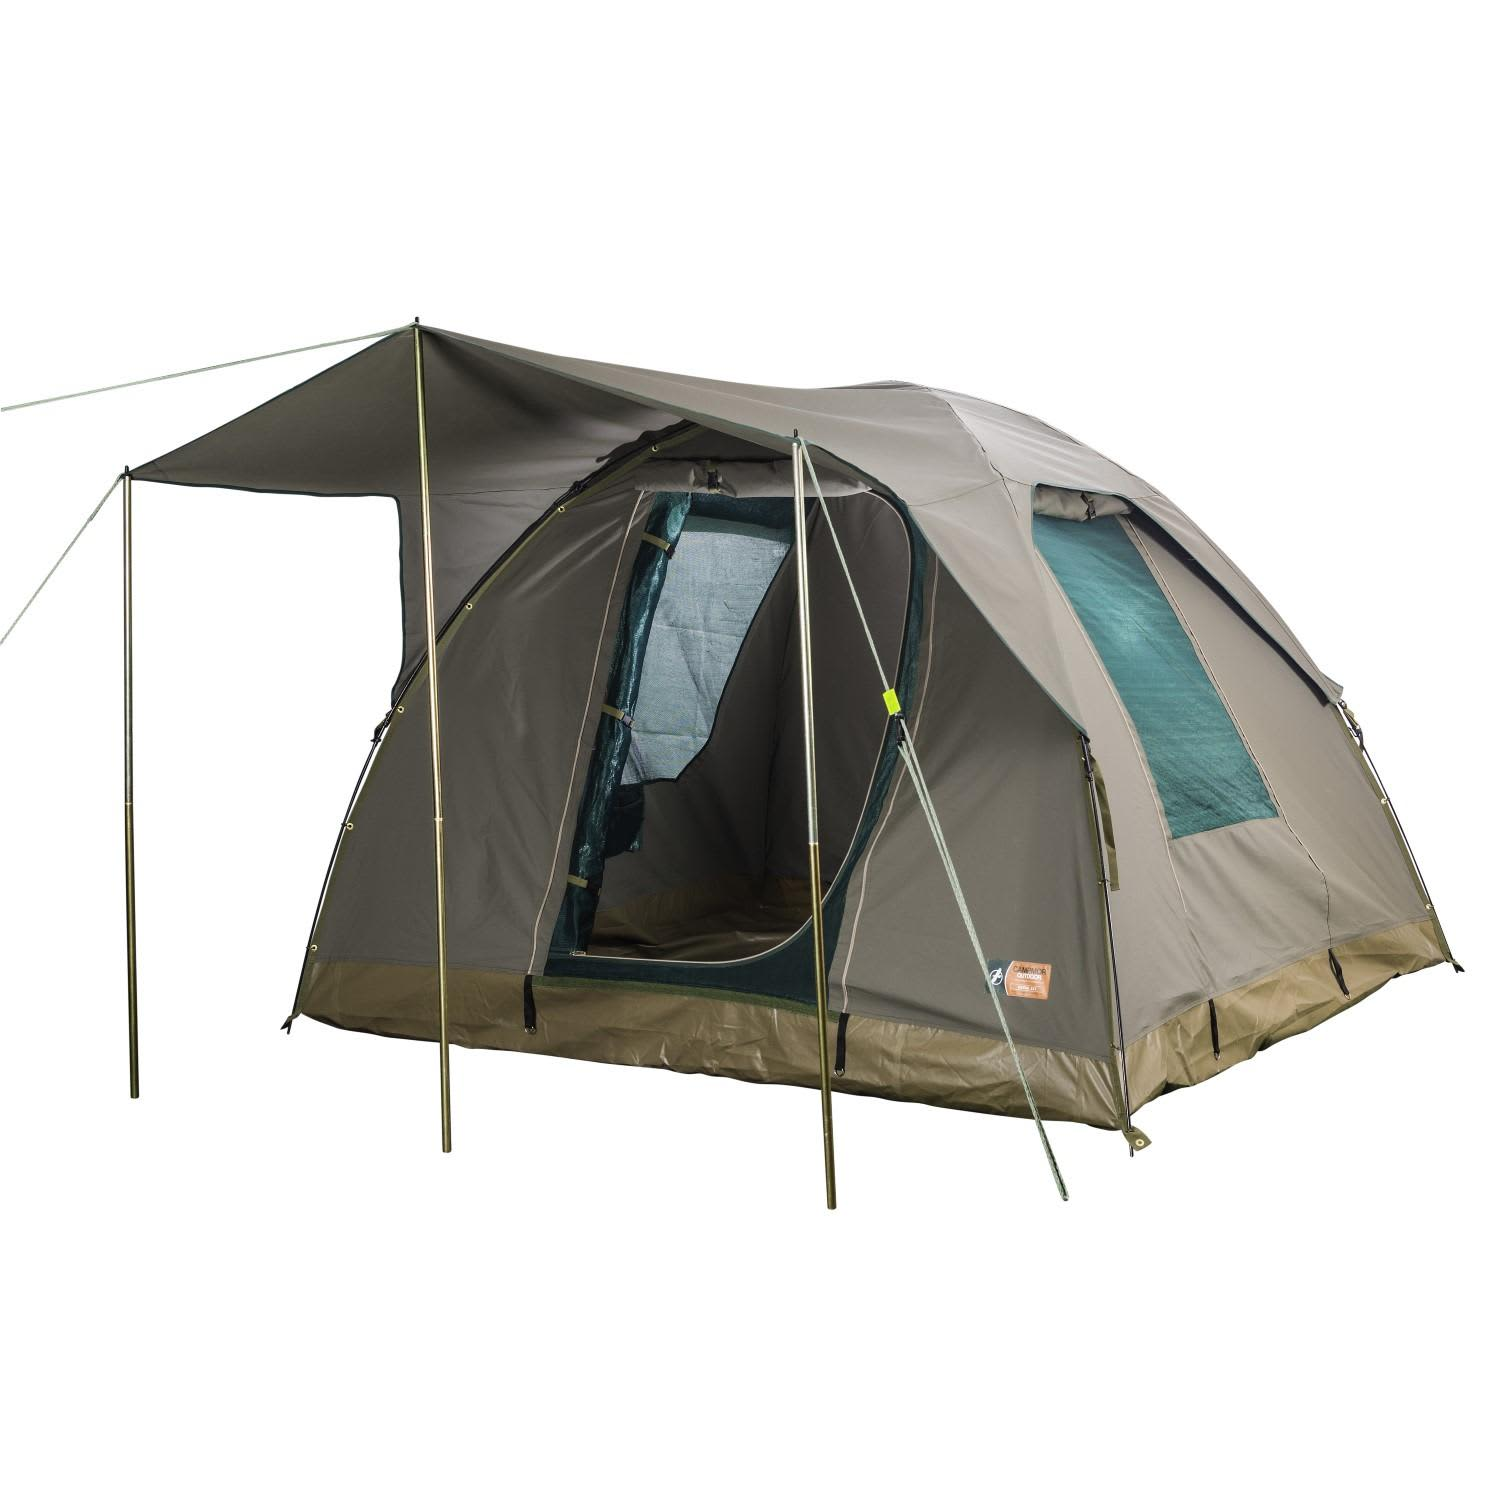 Campmor Overlander 4 Person Canvas Dome Tent With Large Awning